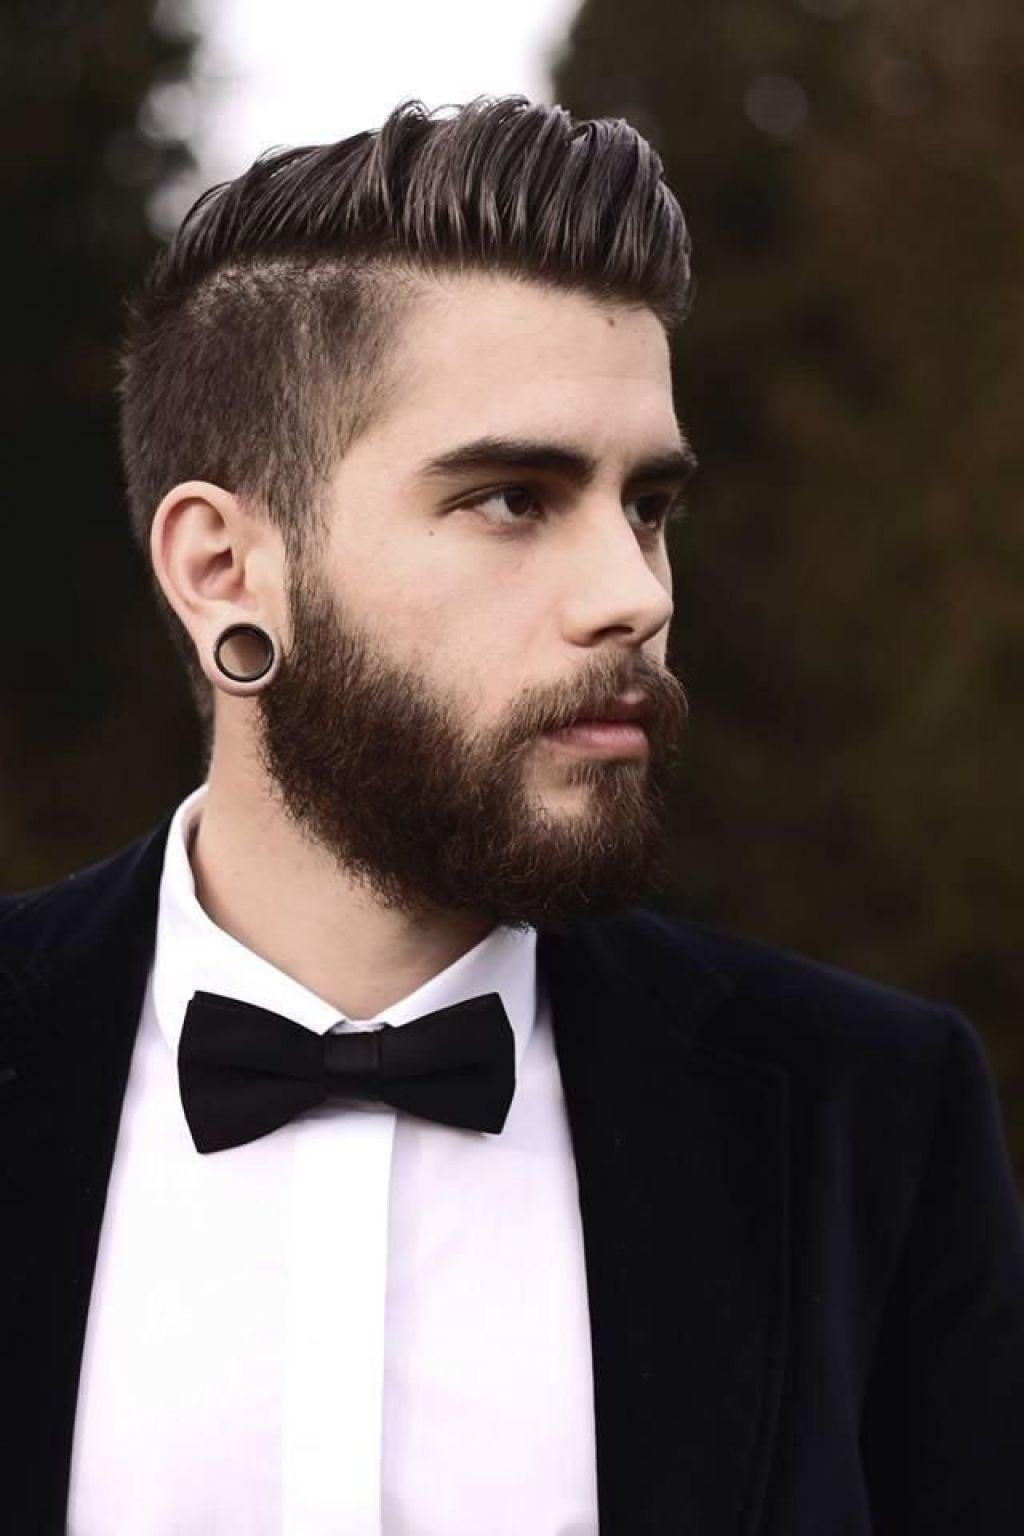 New 12 Best Stylish Hipster Hairstyles For Men Mens Craze Ideas With Pictures